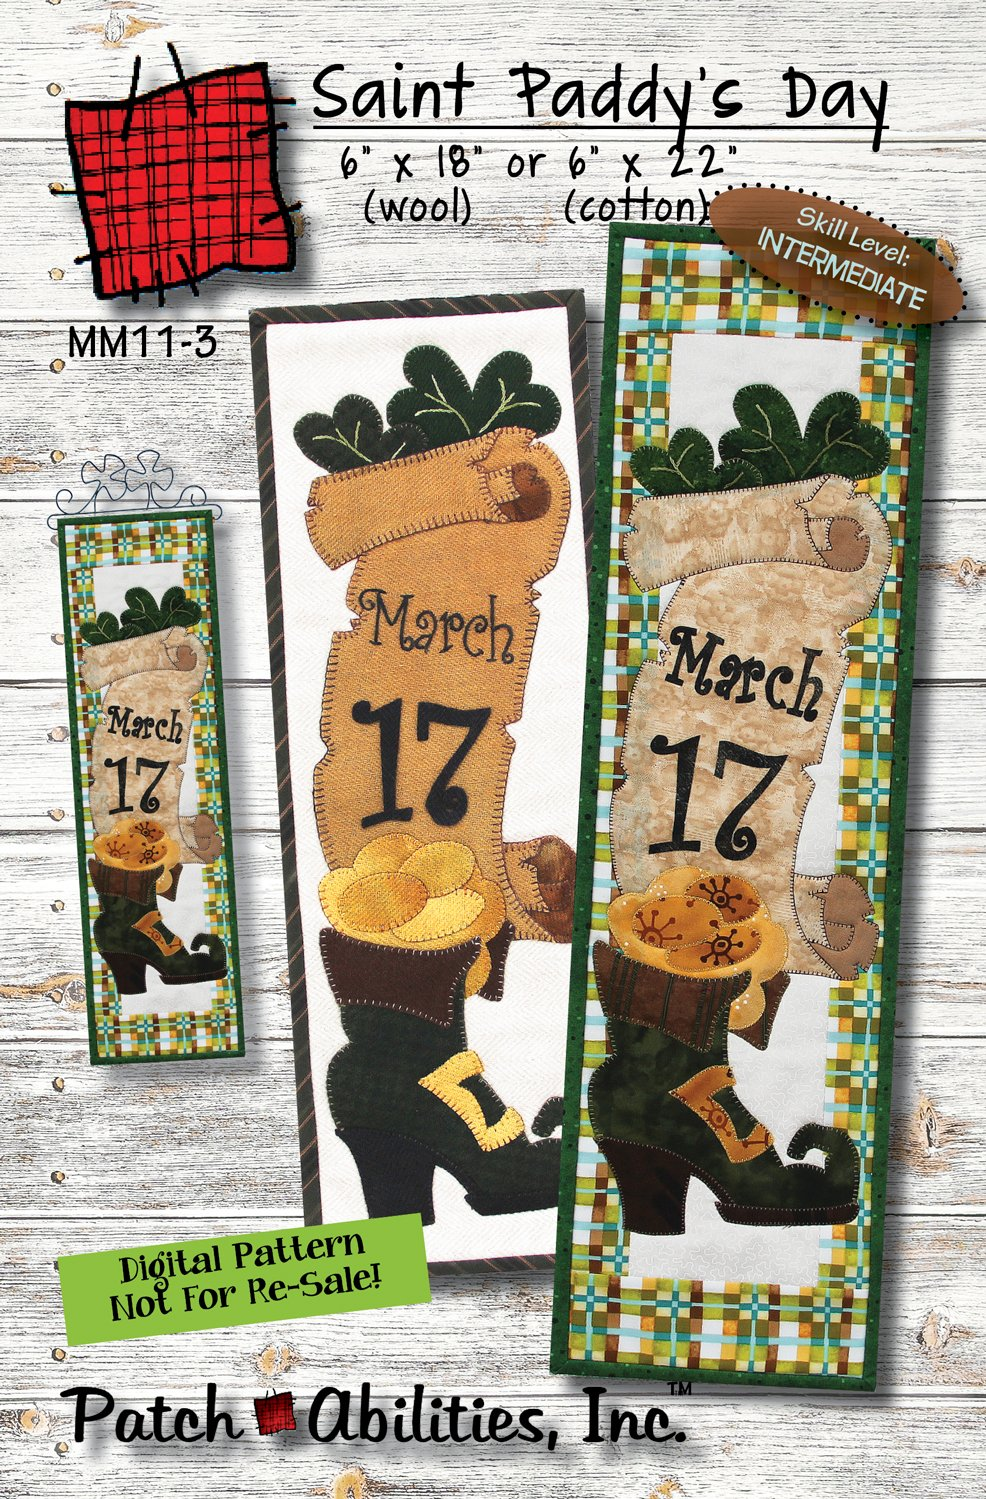 MM11-3 St. Paddy's Day DIGITAL DOWNLOAD PATTERN